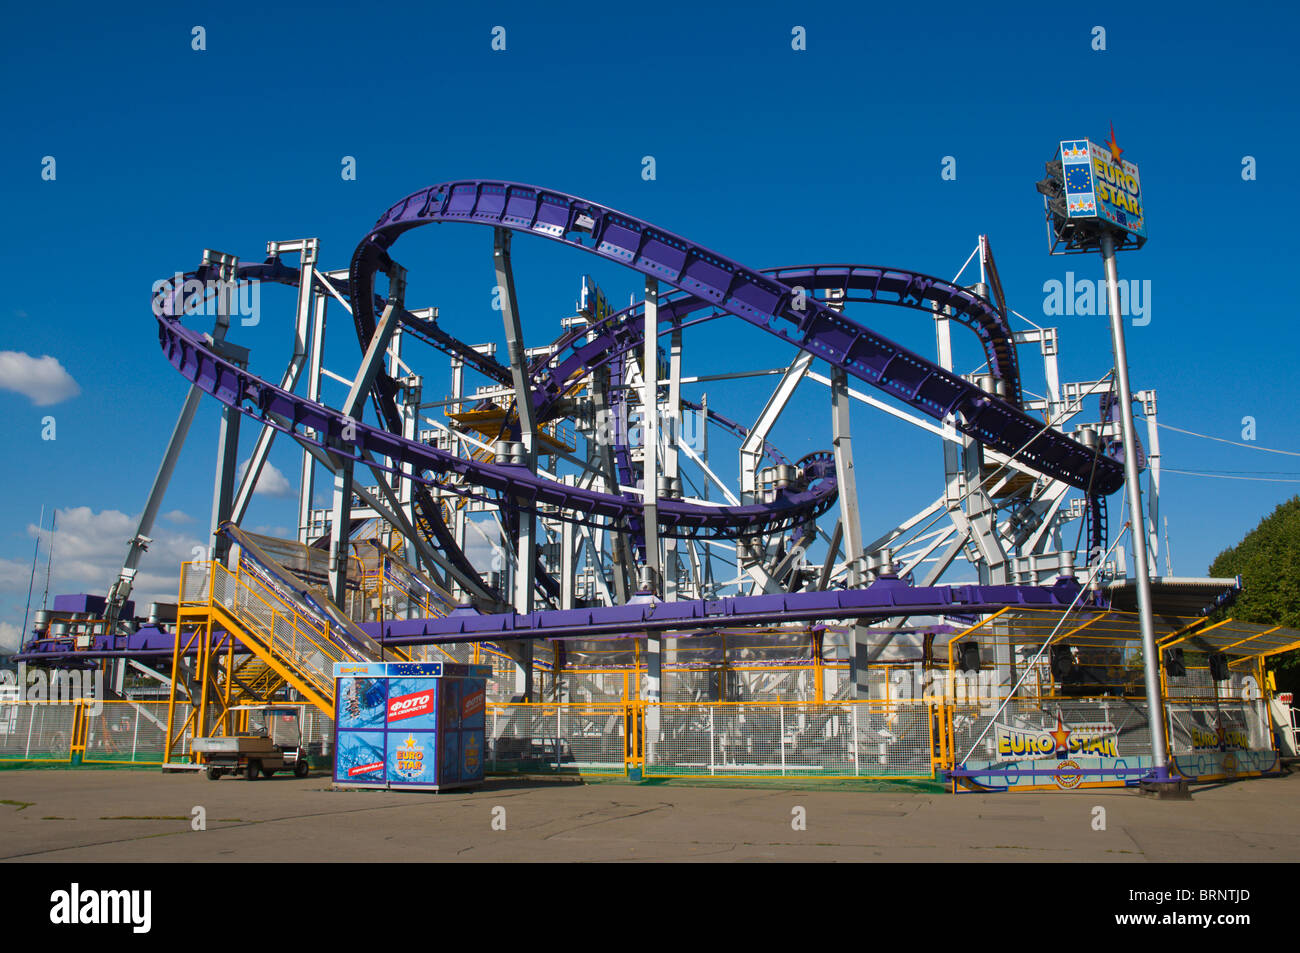 The roller coaster in Moscow is a paradise for extreme lovers 79